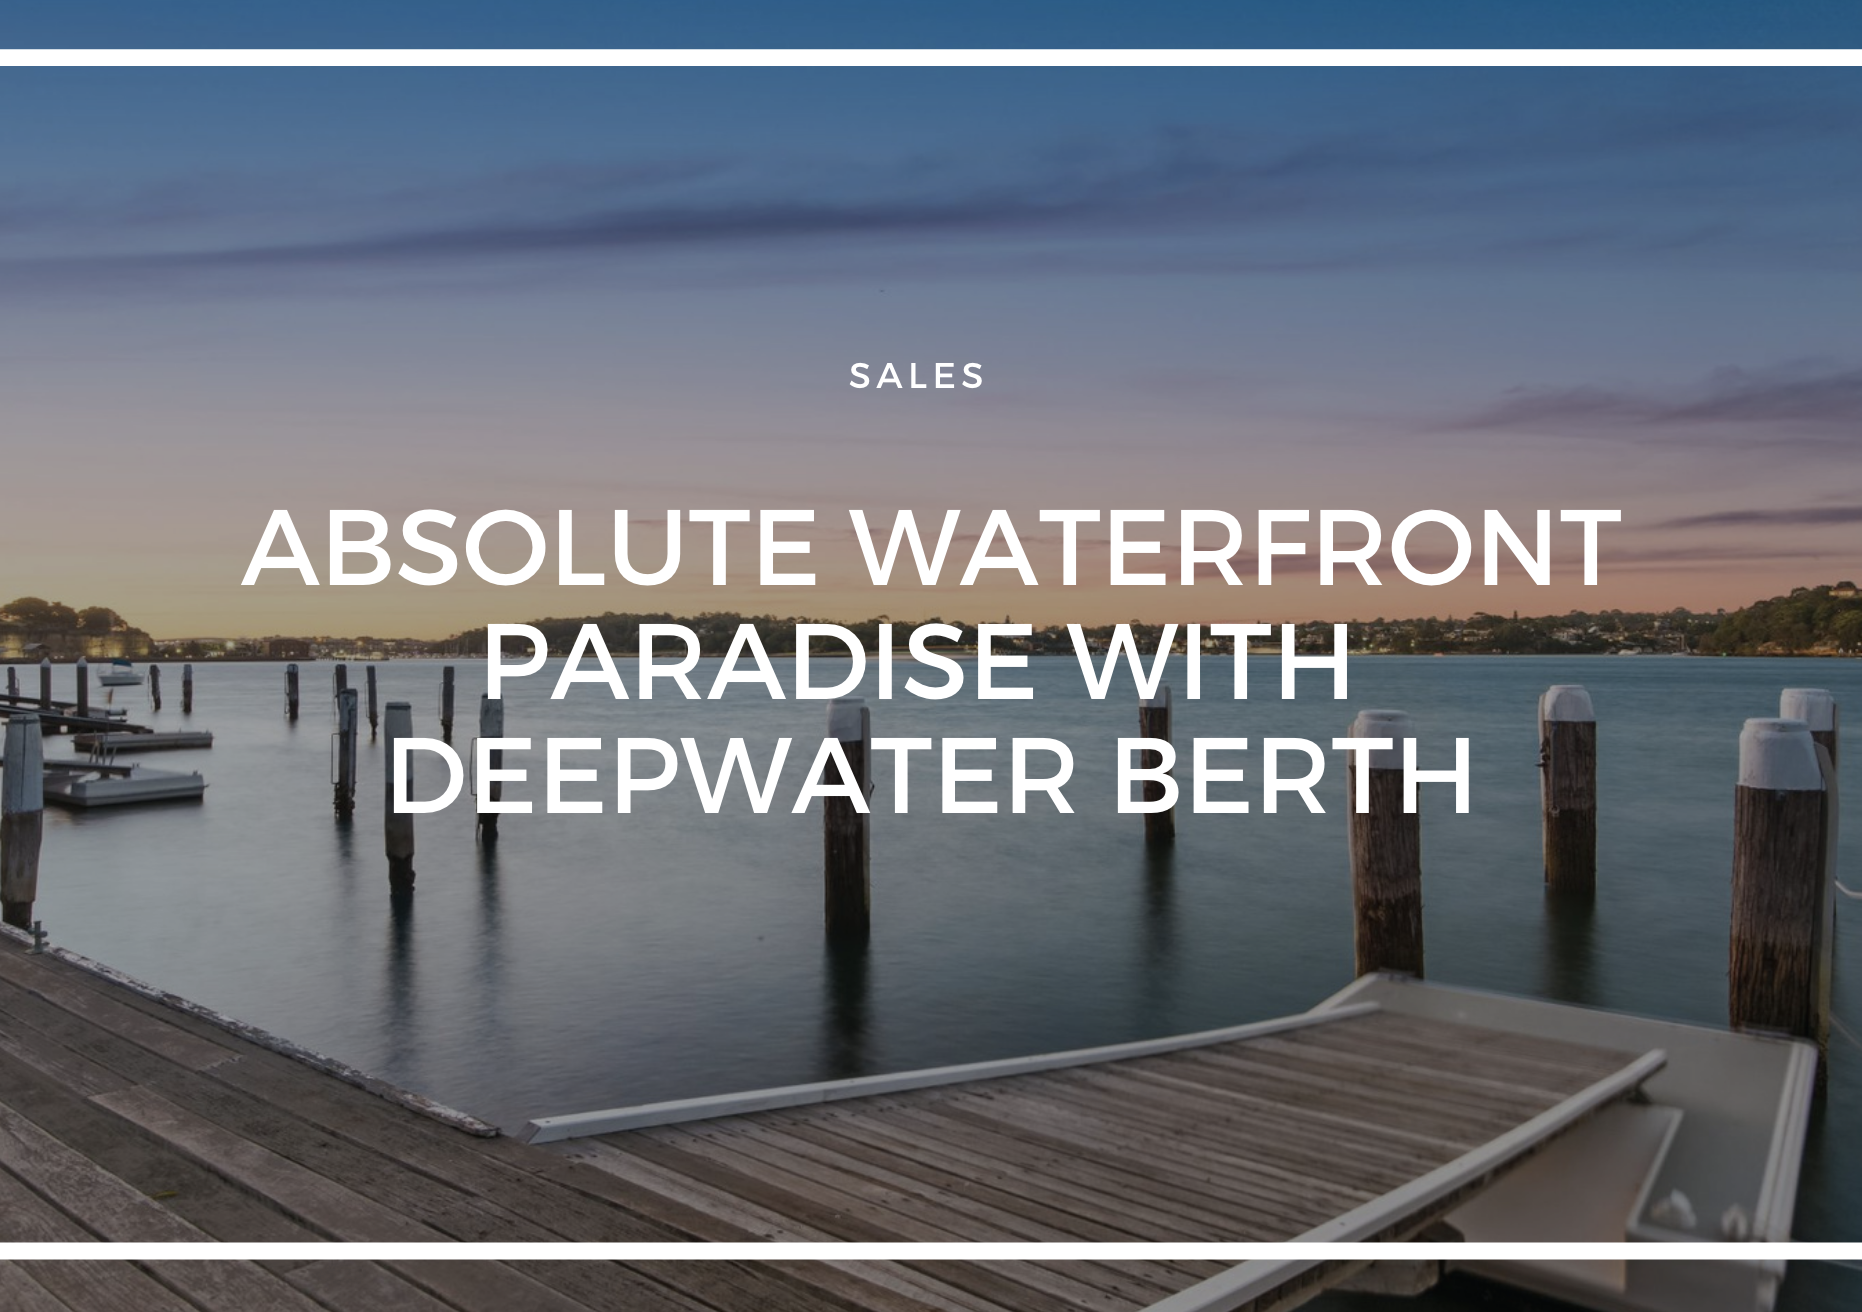 ABSOLUTE WATERFRONT PARADISE WITH DEEPWATER BERTH